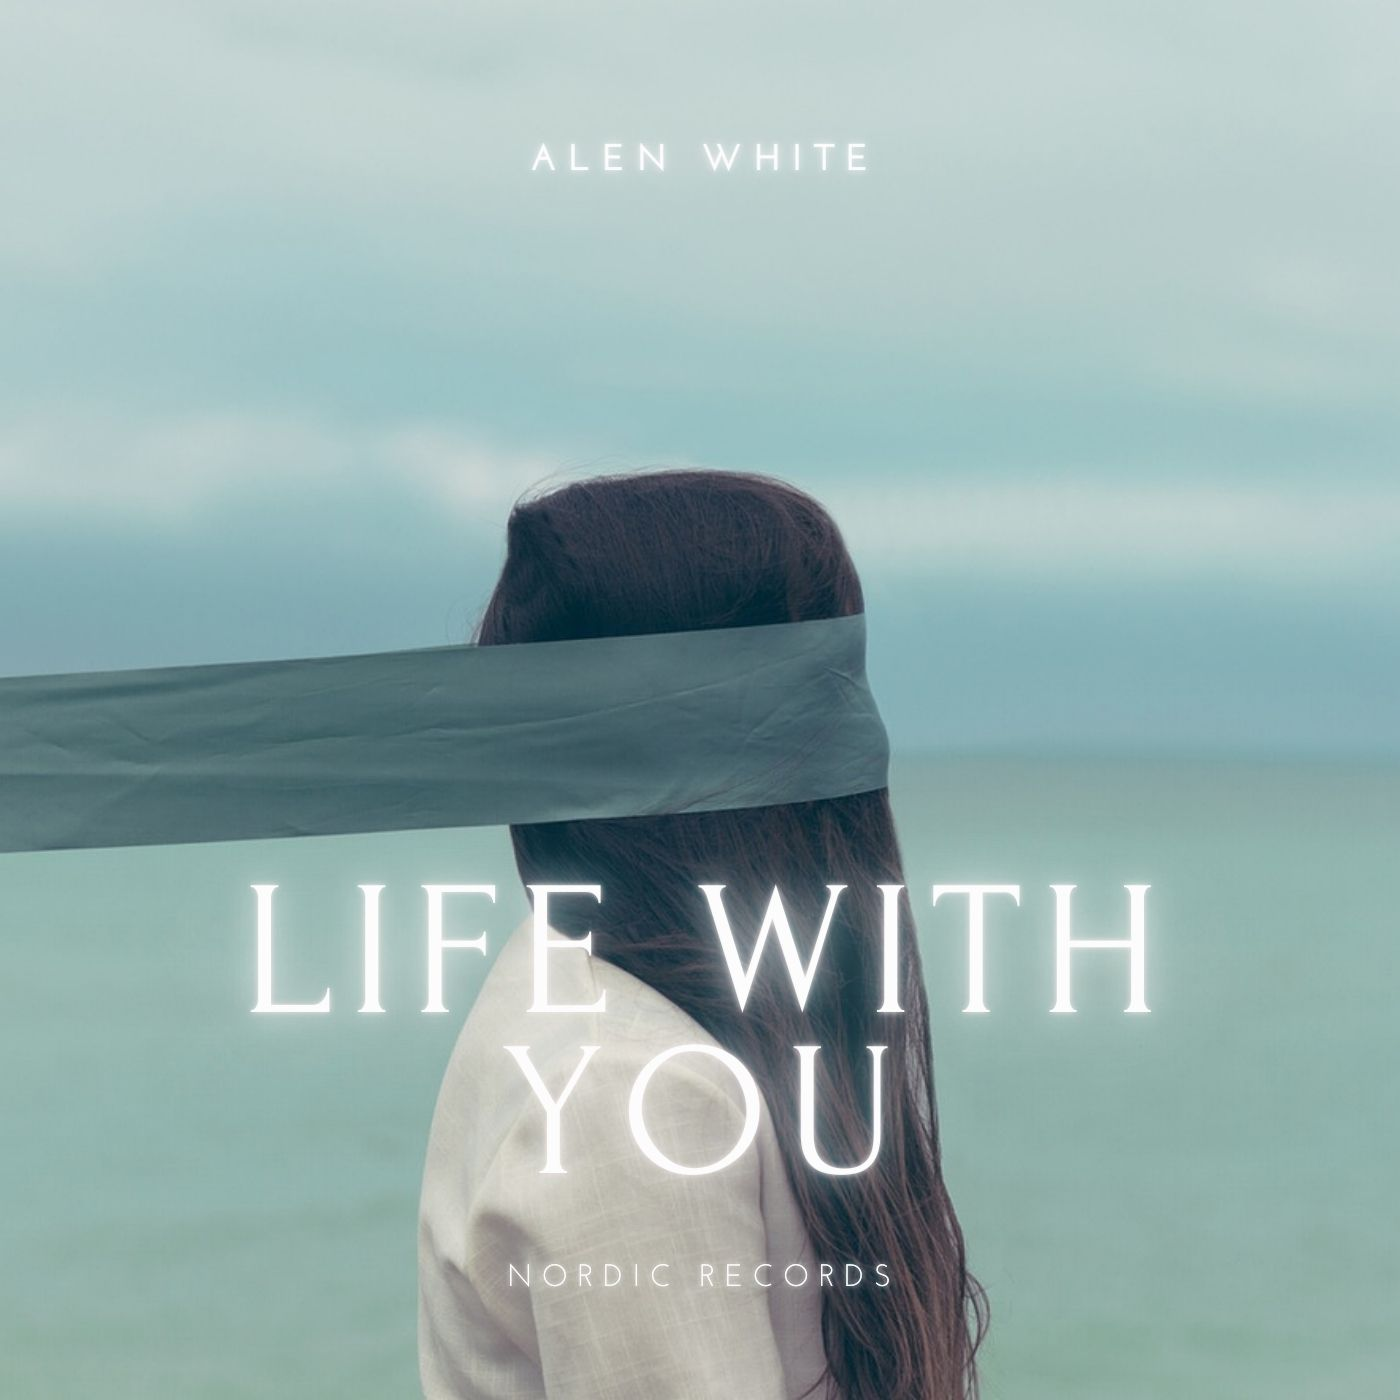 Life-with-you-song-alen-white